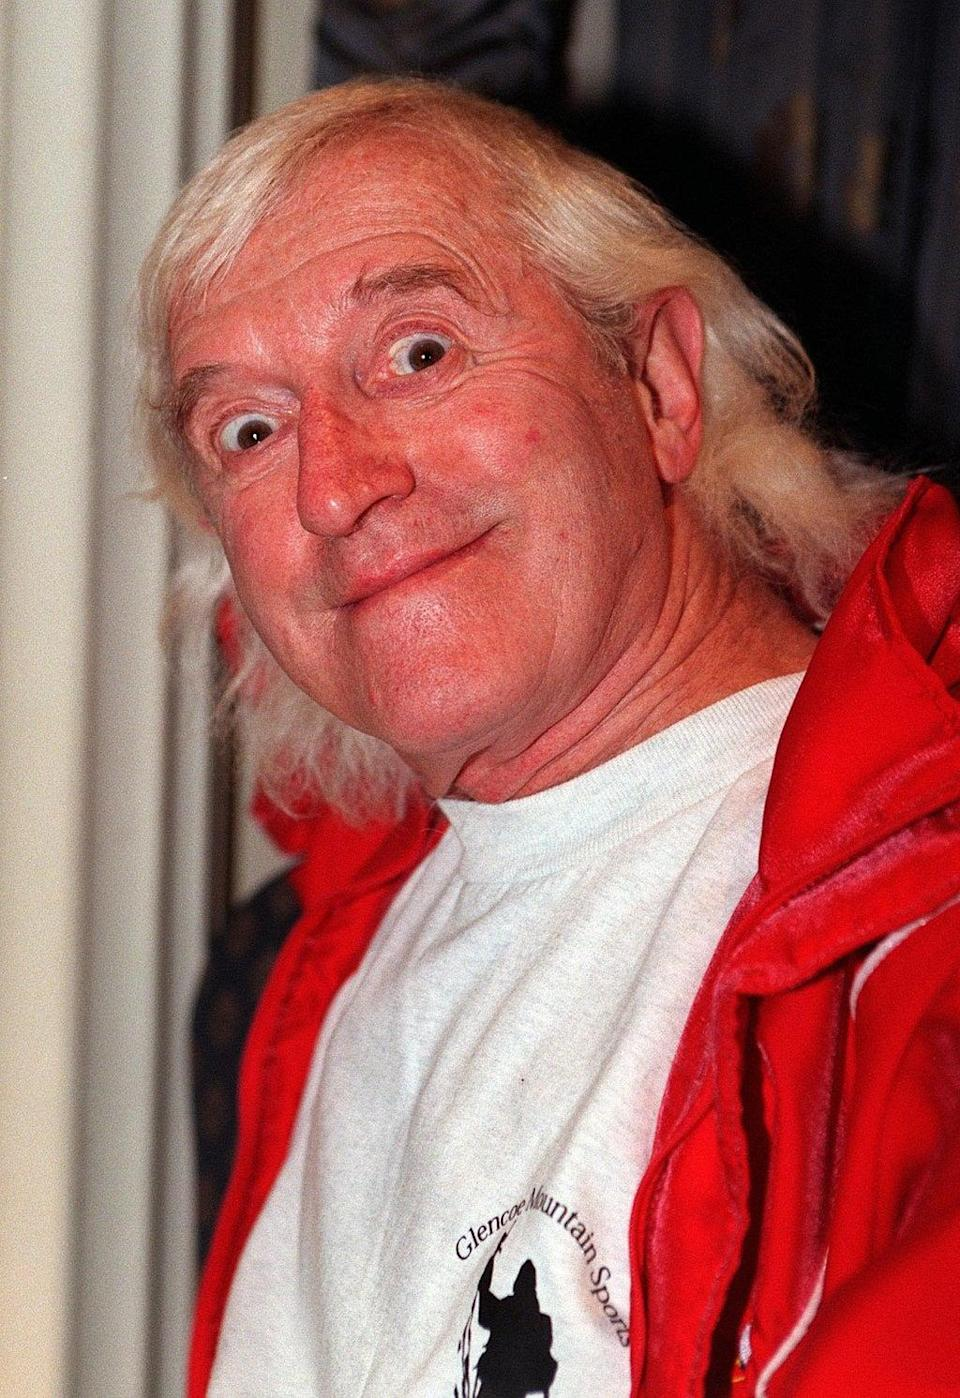 Jimmy Saville was exposed as a predatory sex offender after his death (Peter Jordan/PA) (PA Media)